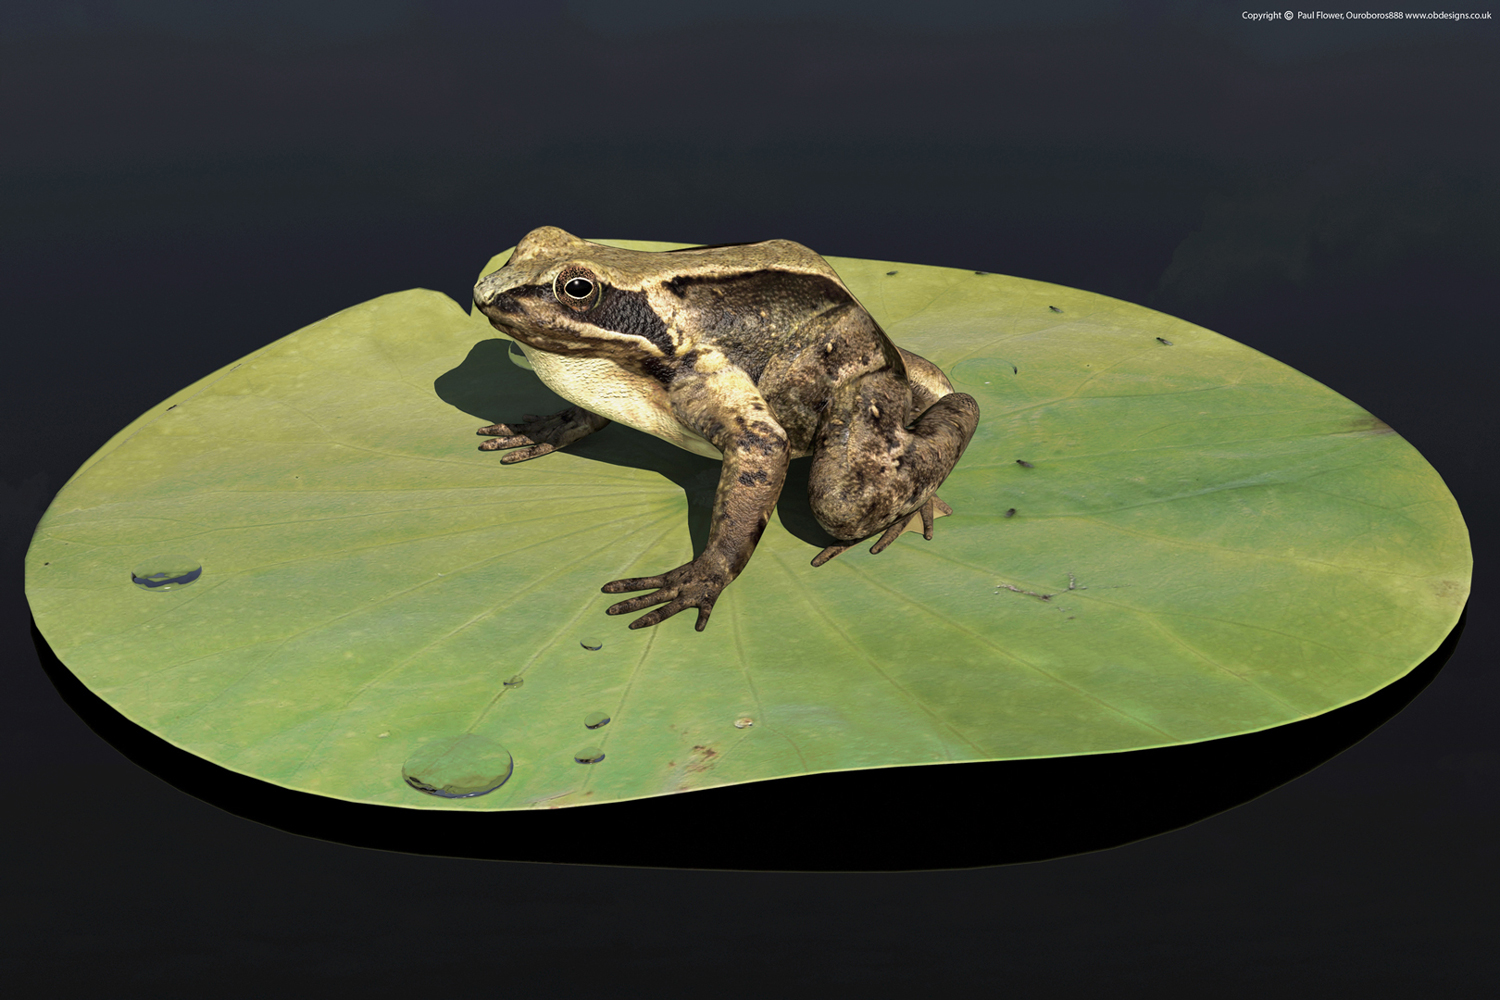 3D-Frog-on-a-Pad